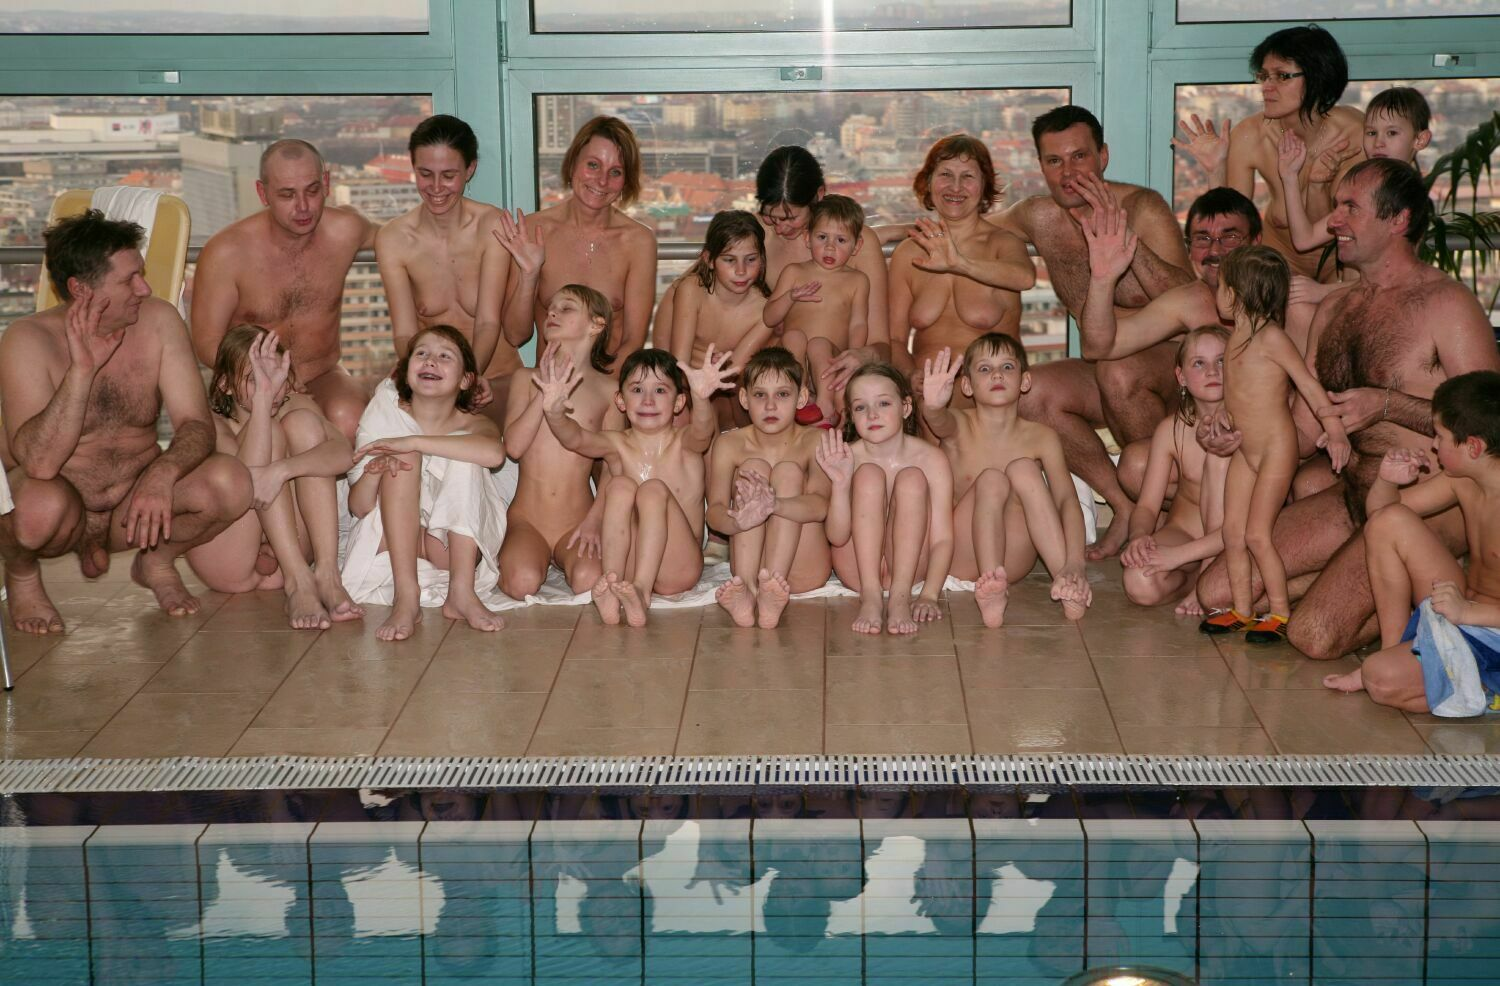 Nudist Pool Darts- Naturist Family Events [Pure nudism photos] set2